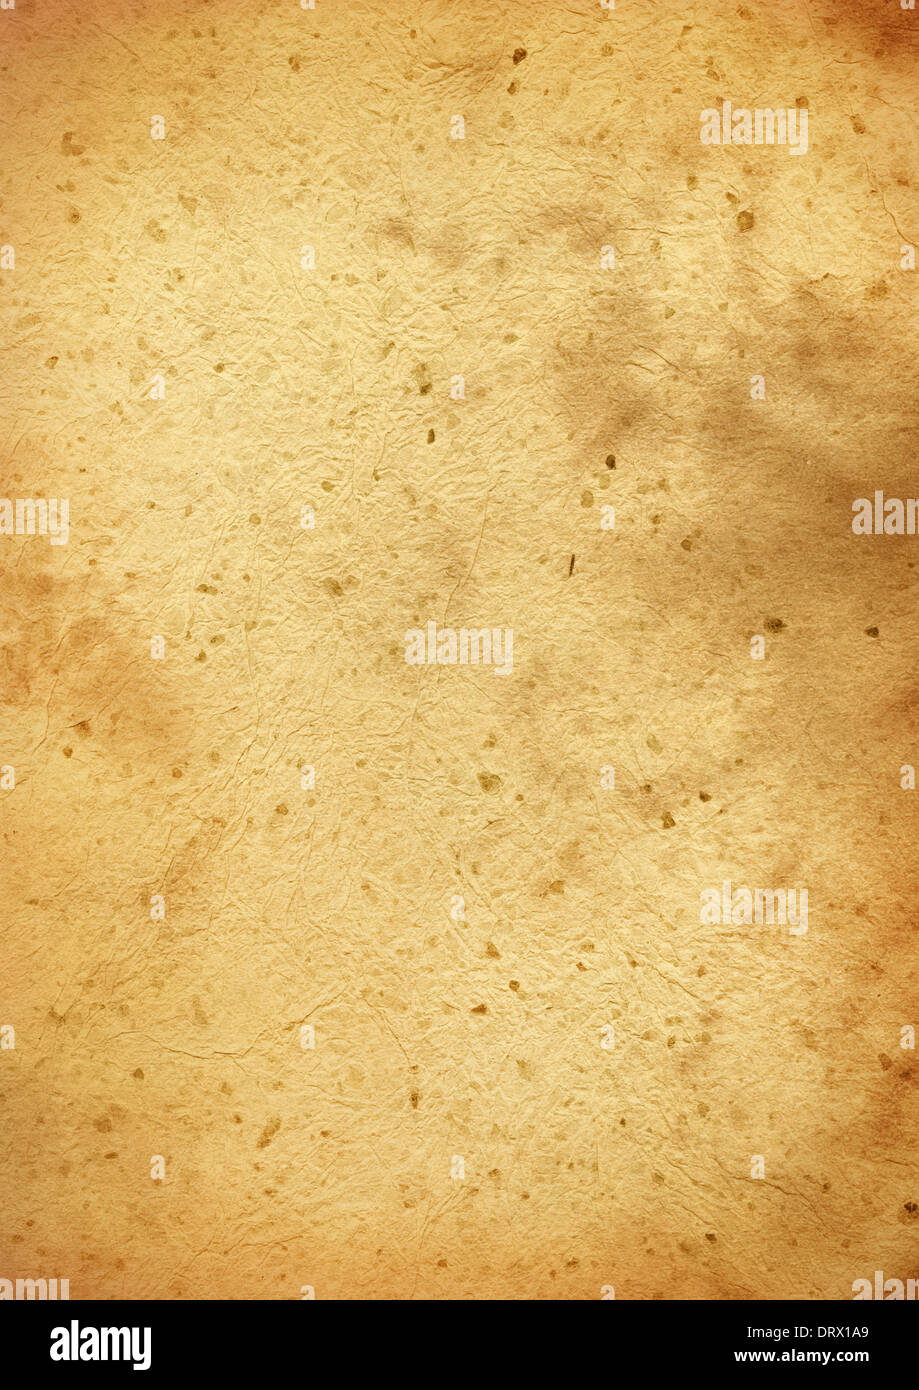 old grunge parchment paper texture background stock photo 66340017